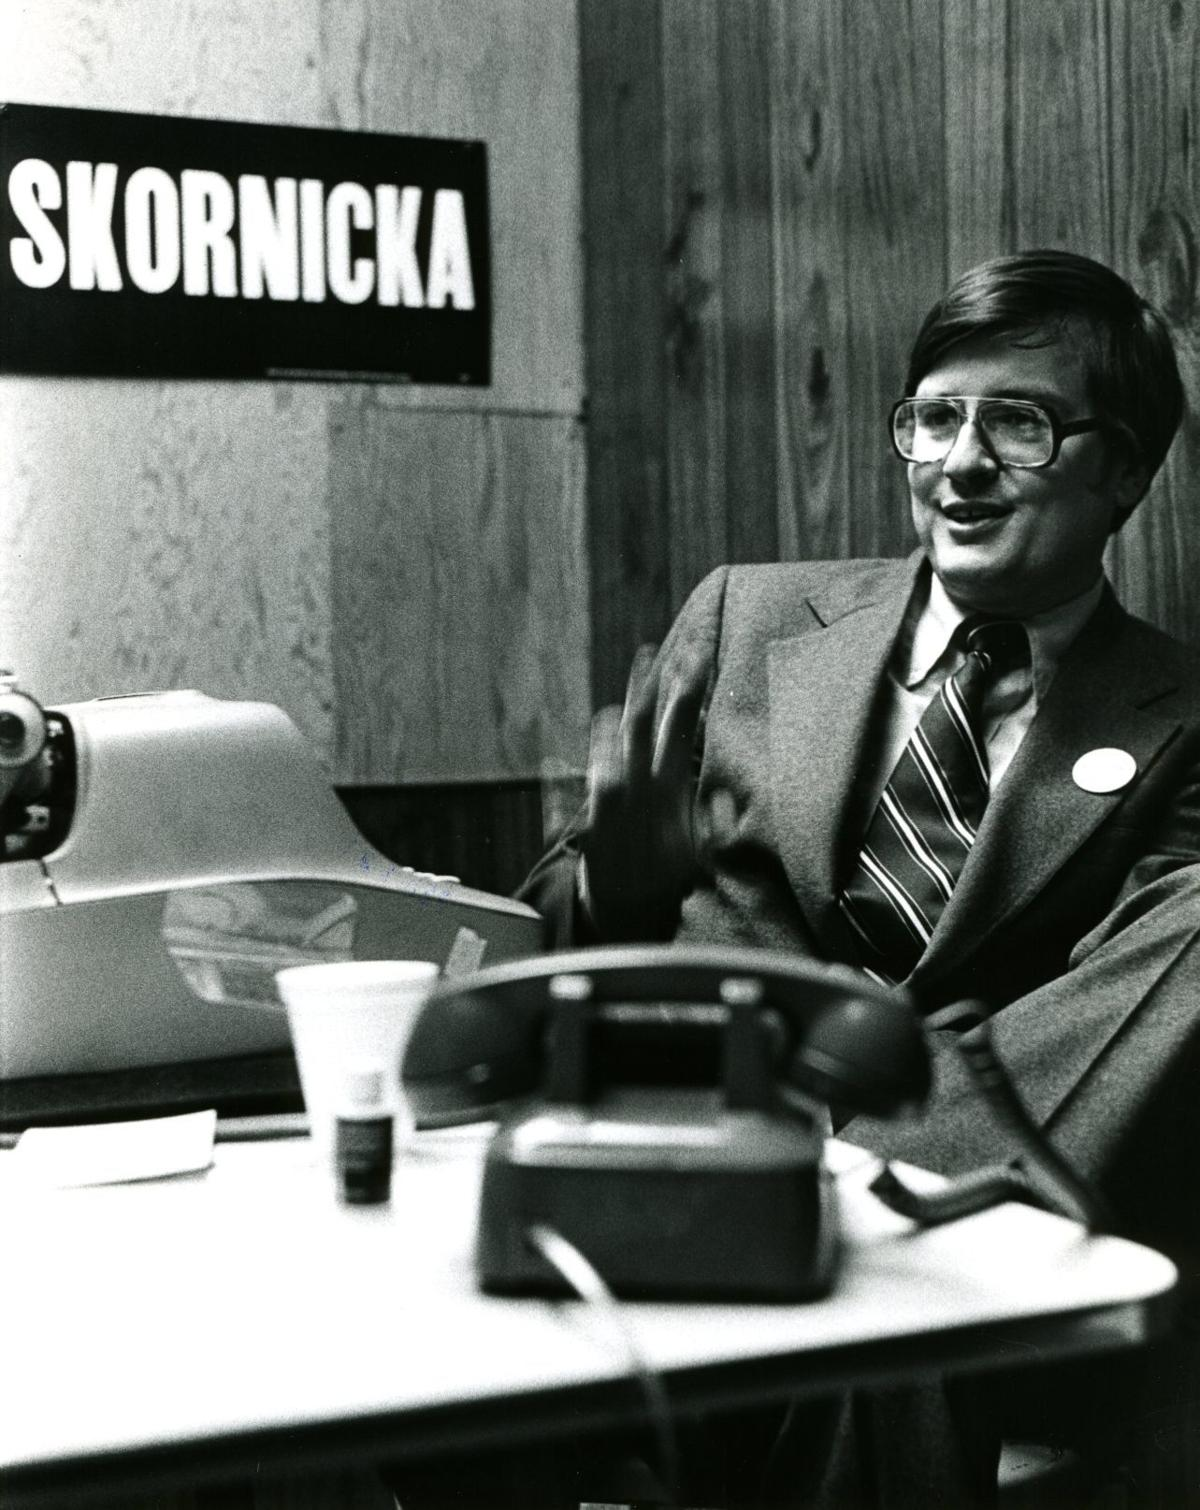 Joel Skornicka -- Apr 16, 1979 (copy)